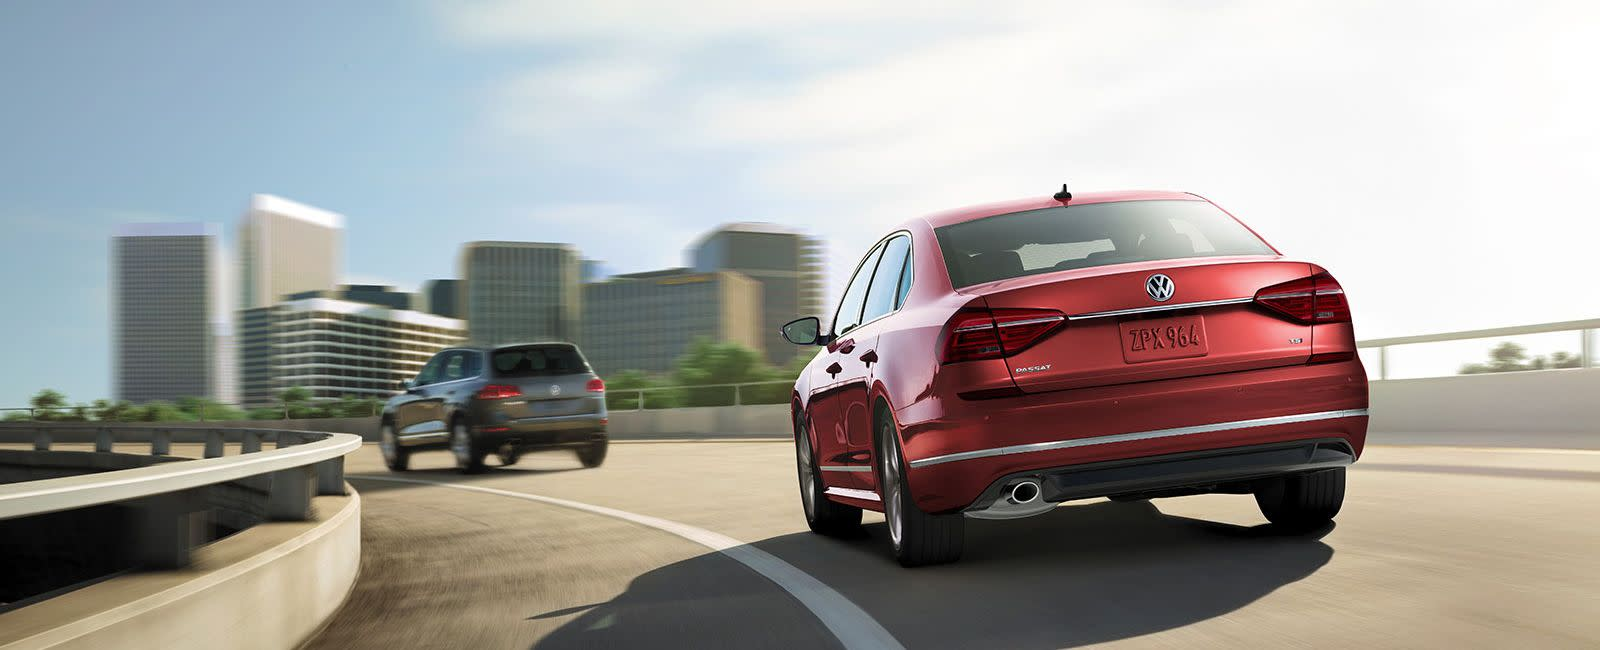 2019 Volkswagen Passat Leasing near Clinton, MD